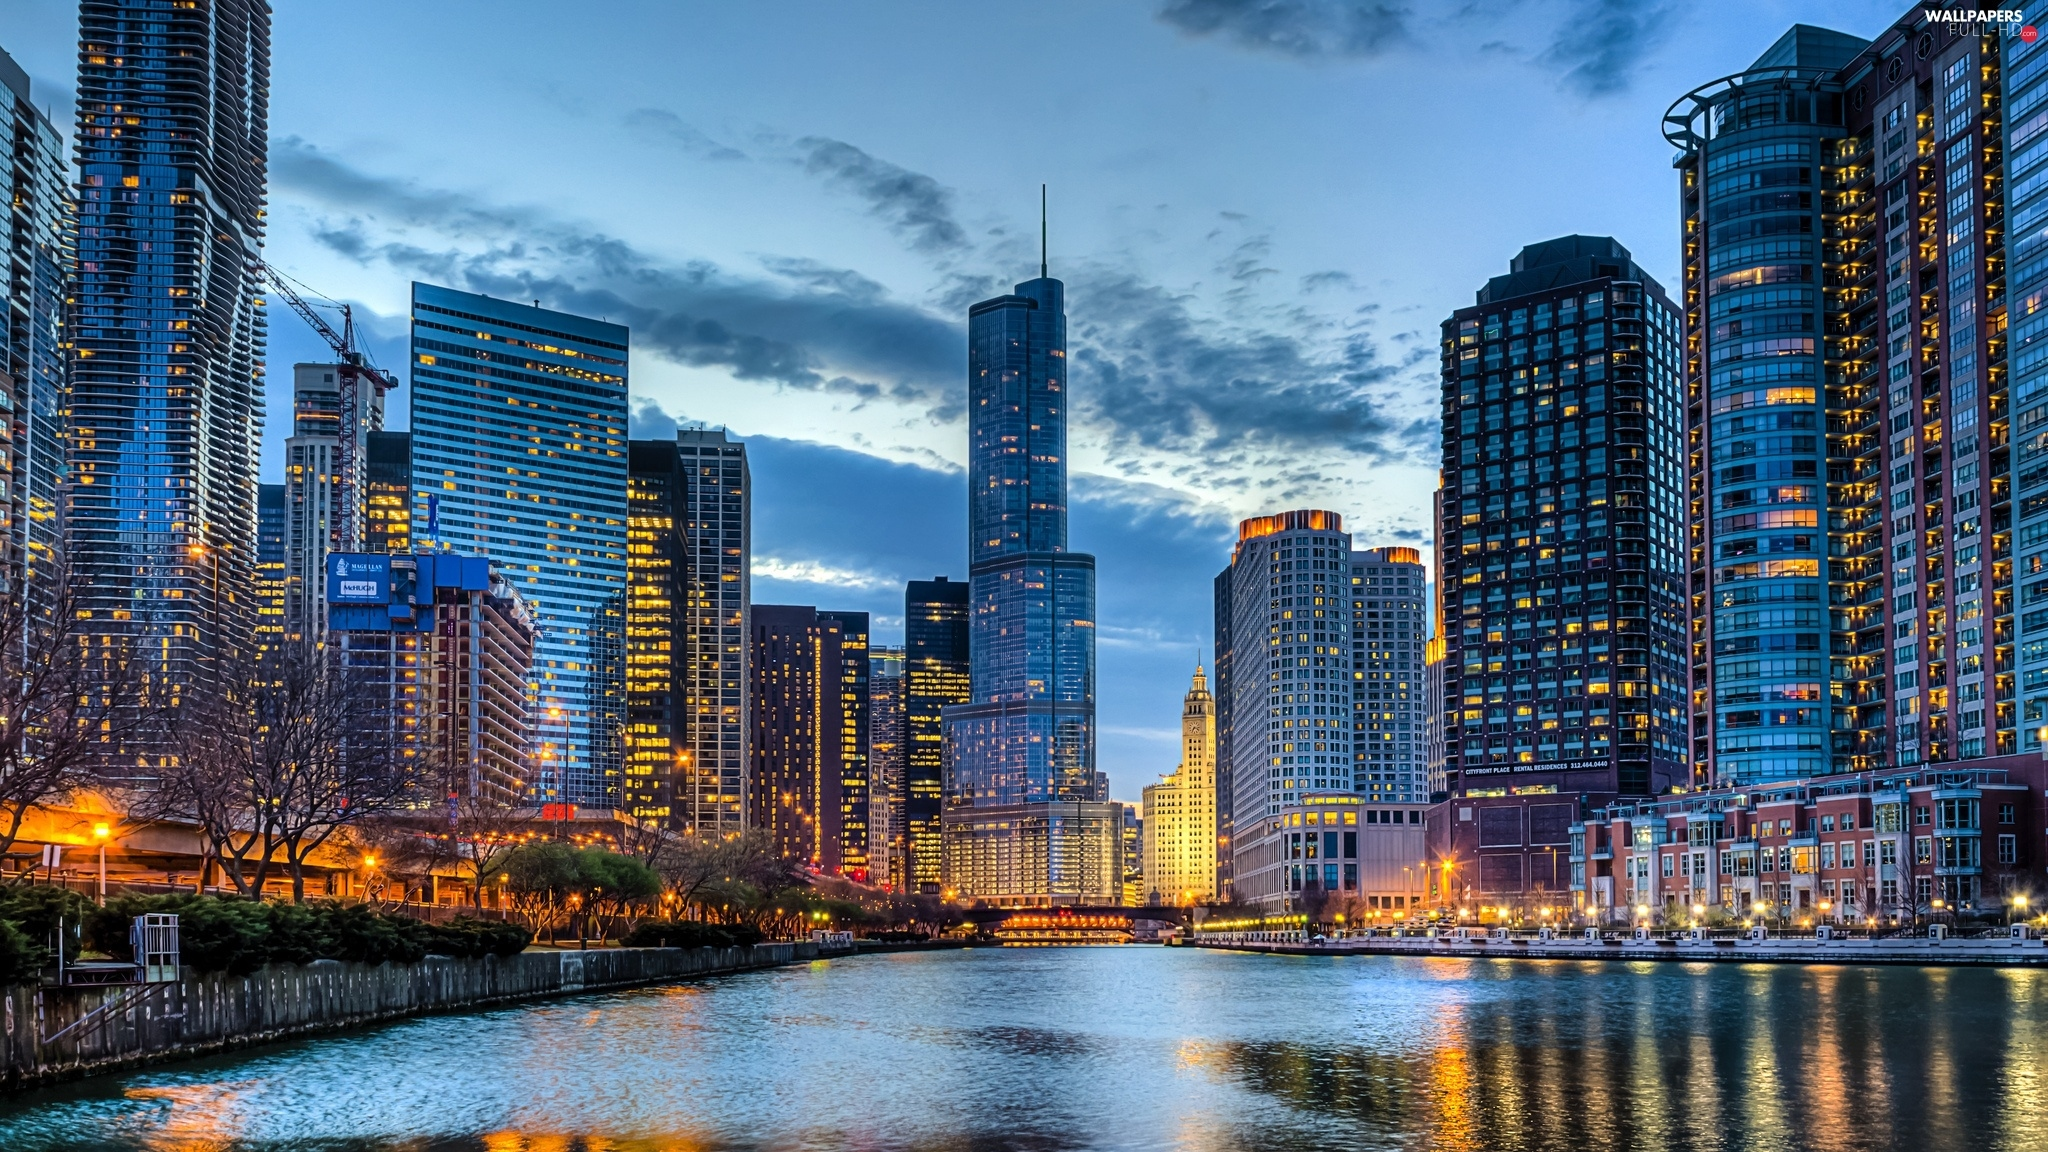 Chicago, clouds, River, USA, skyscrapers